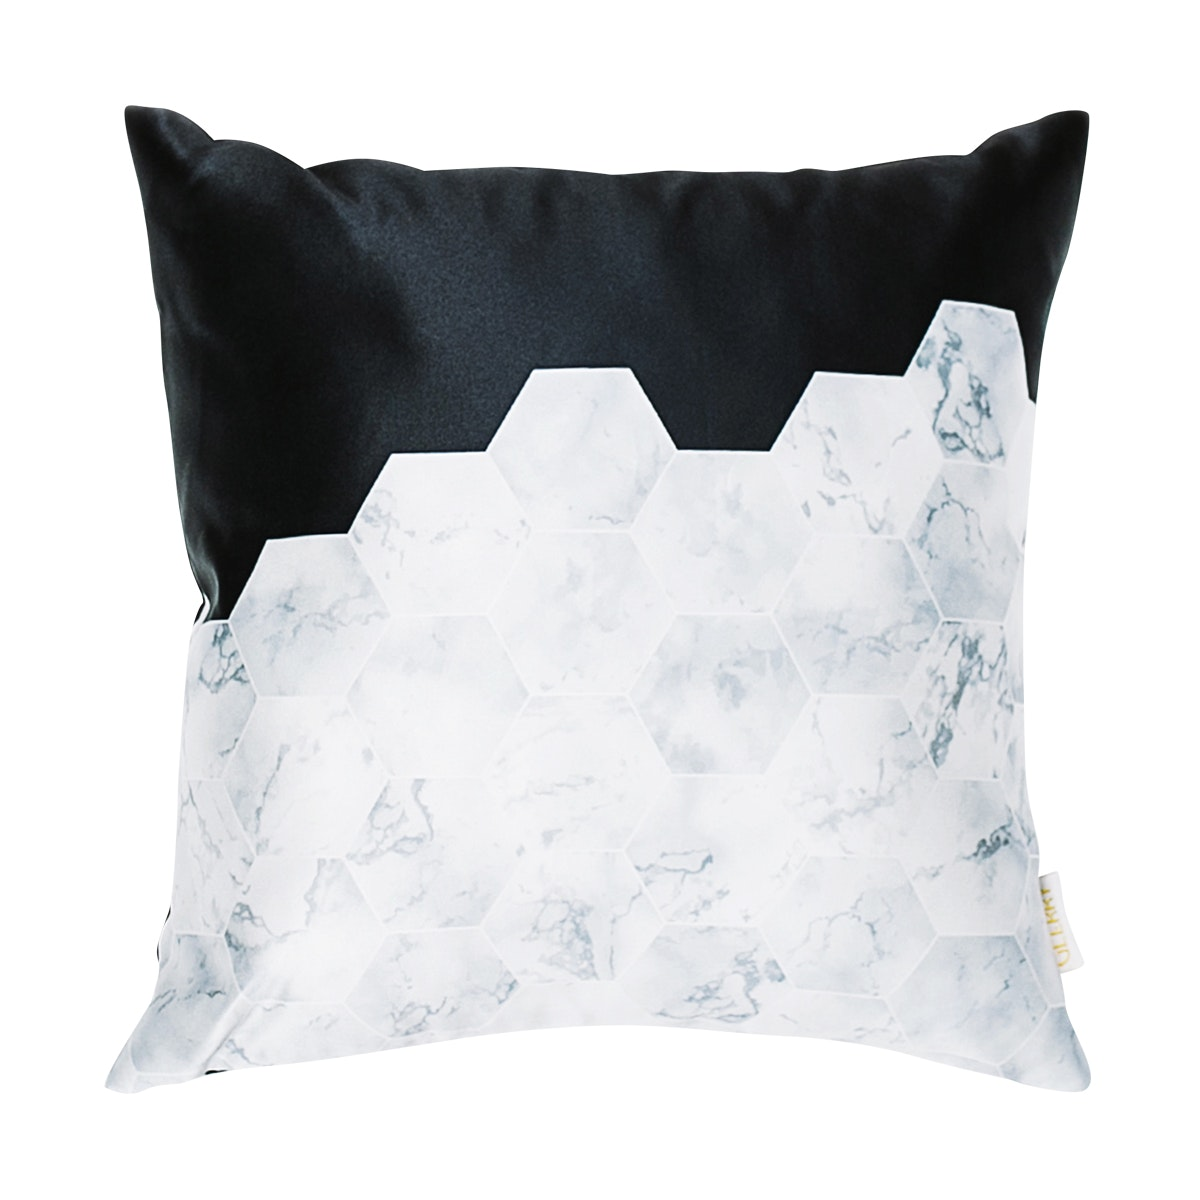 Glerry Home Decor Bw Hex Cushion 40x40cm